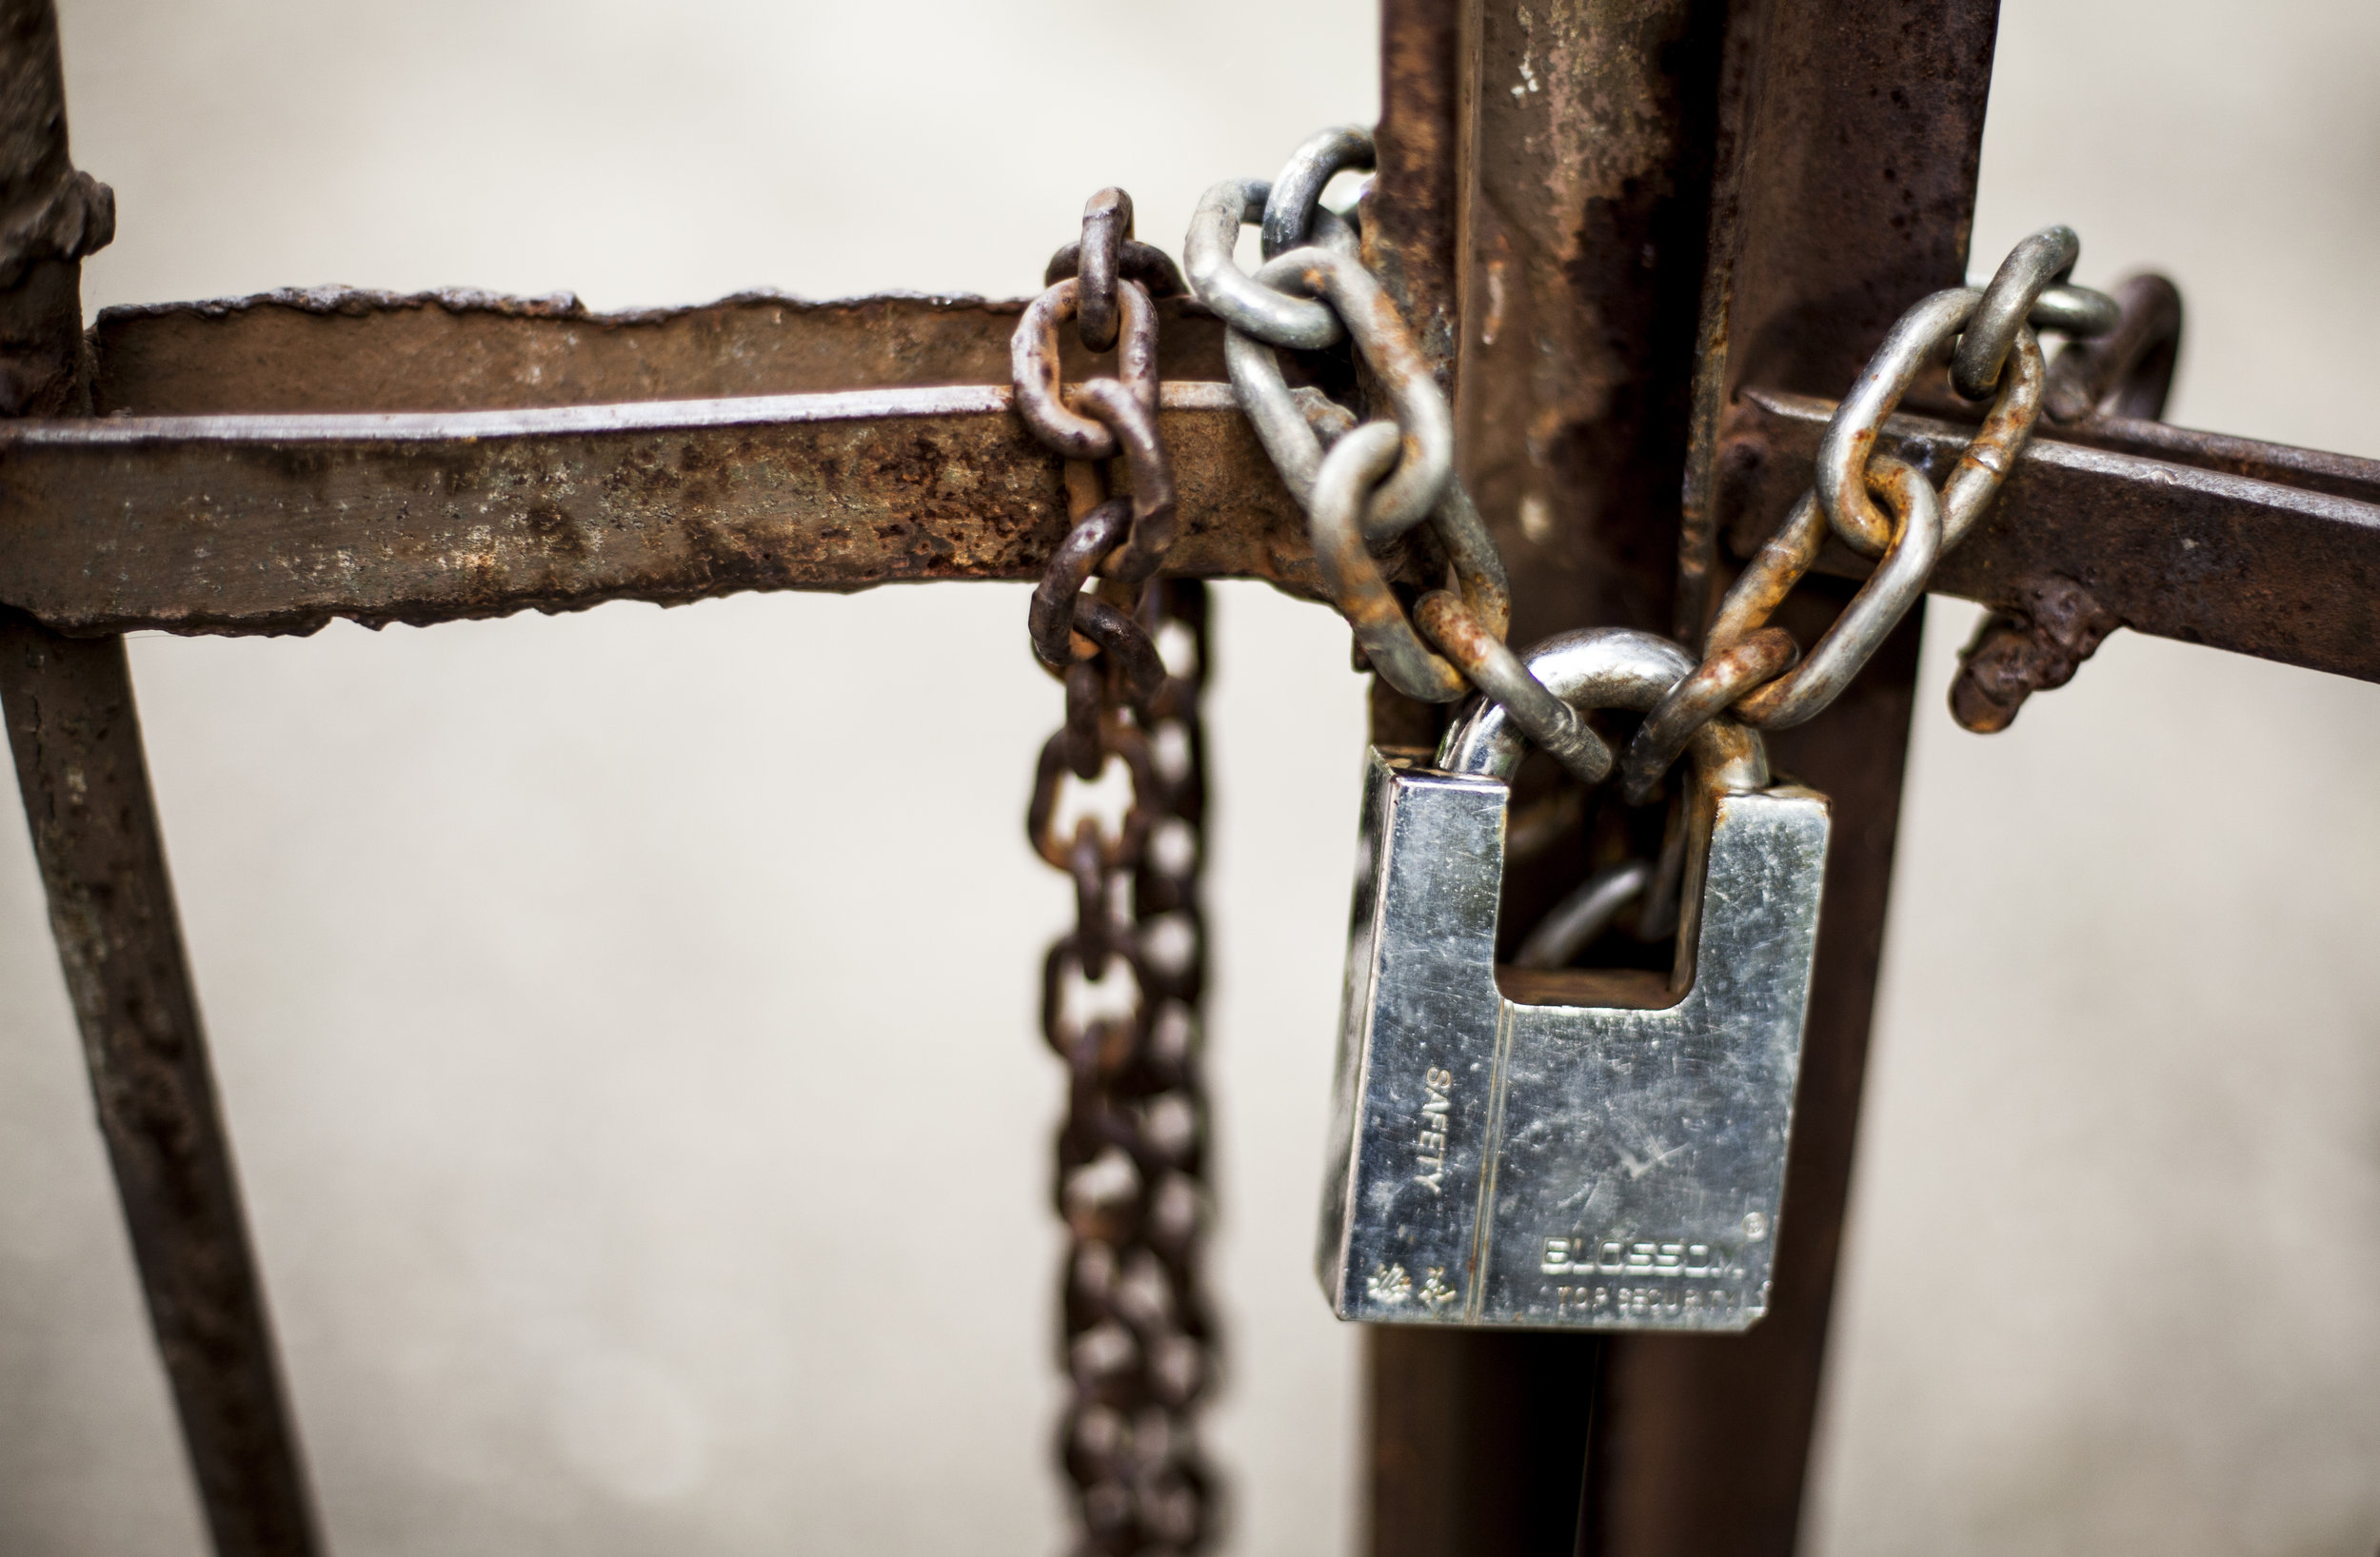 Closing down institutions -